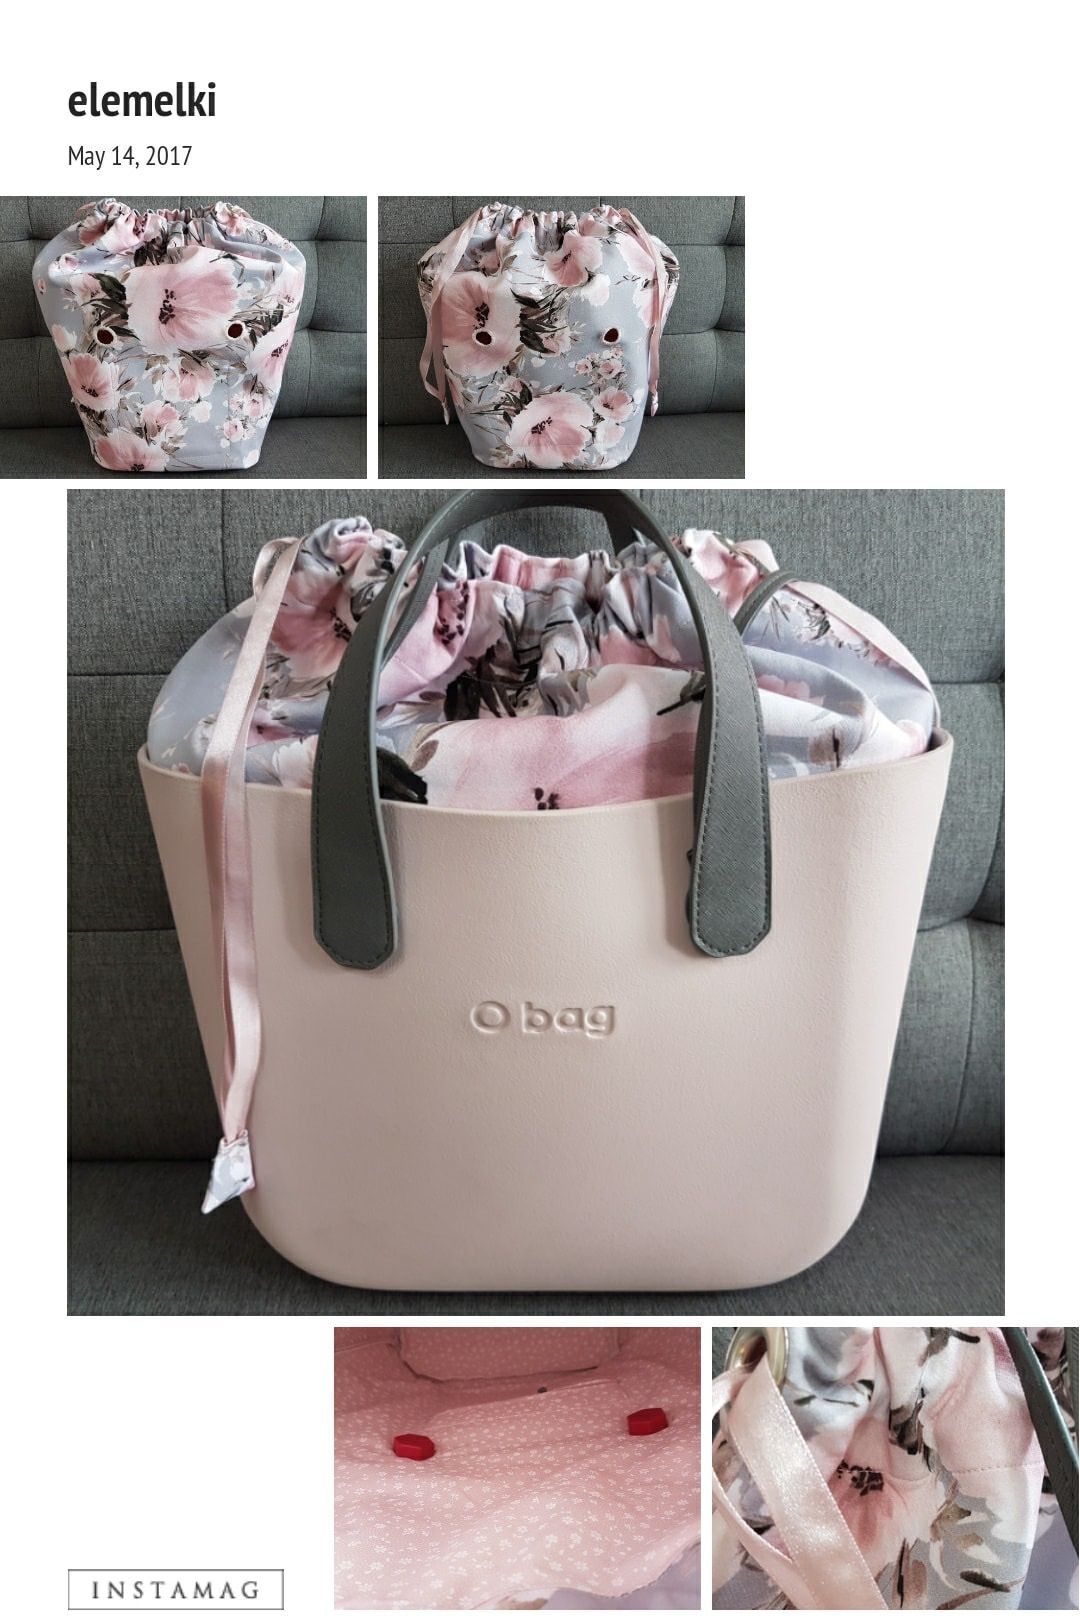 Obag pink smoke   Coucou Sac   Pinterest   Bags, O bag and Purses 33a5c640fc